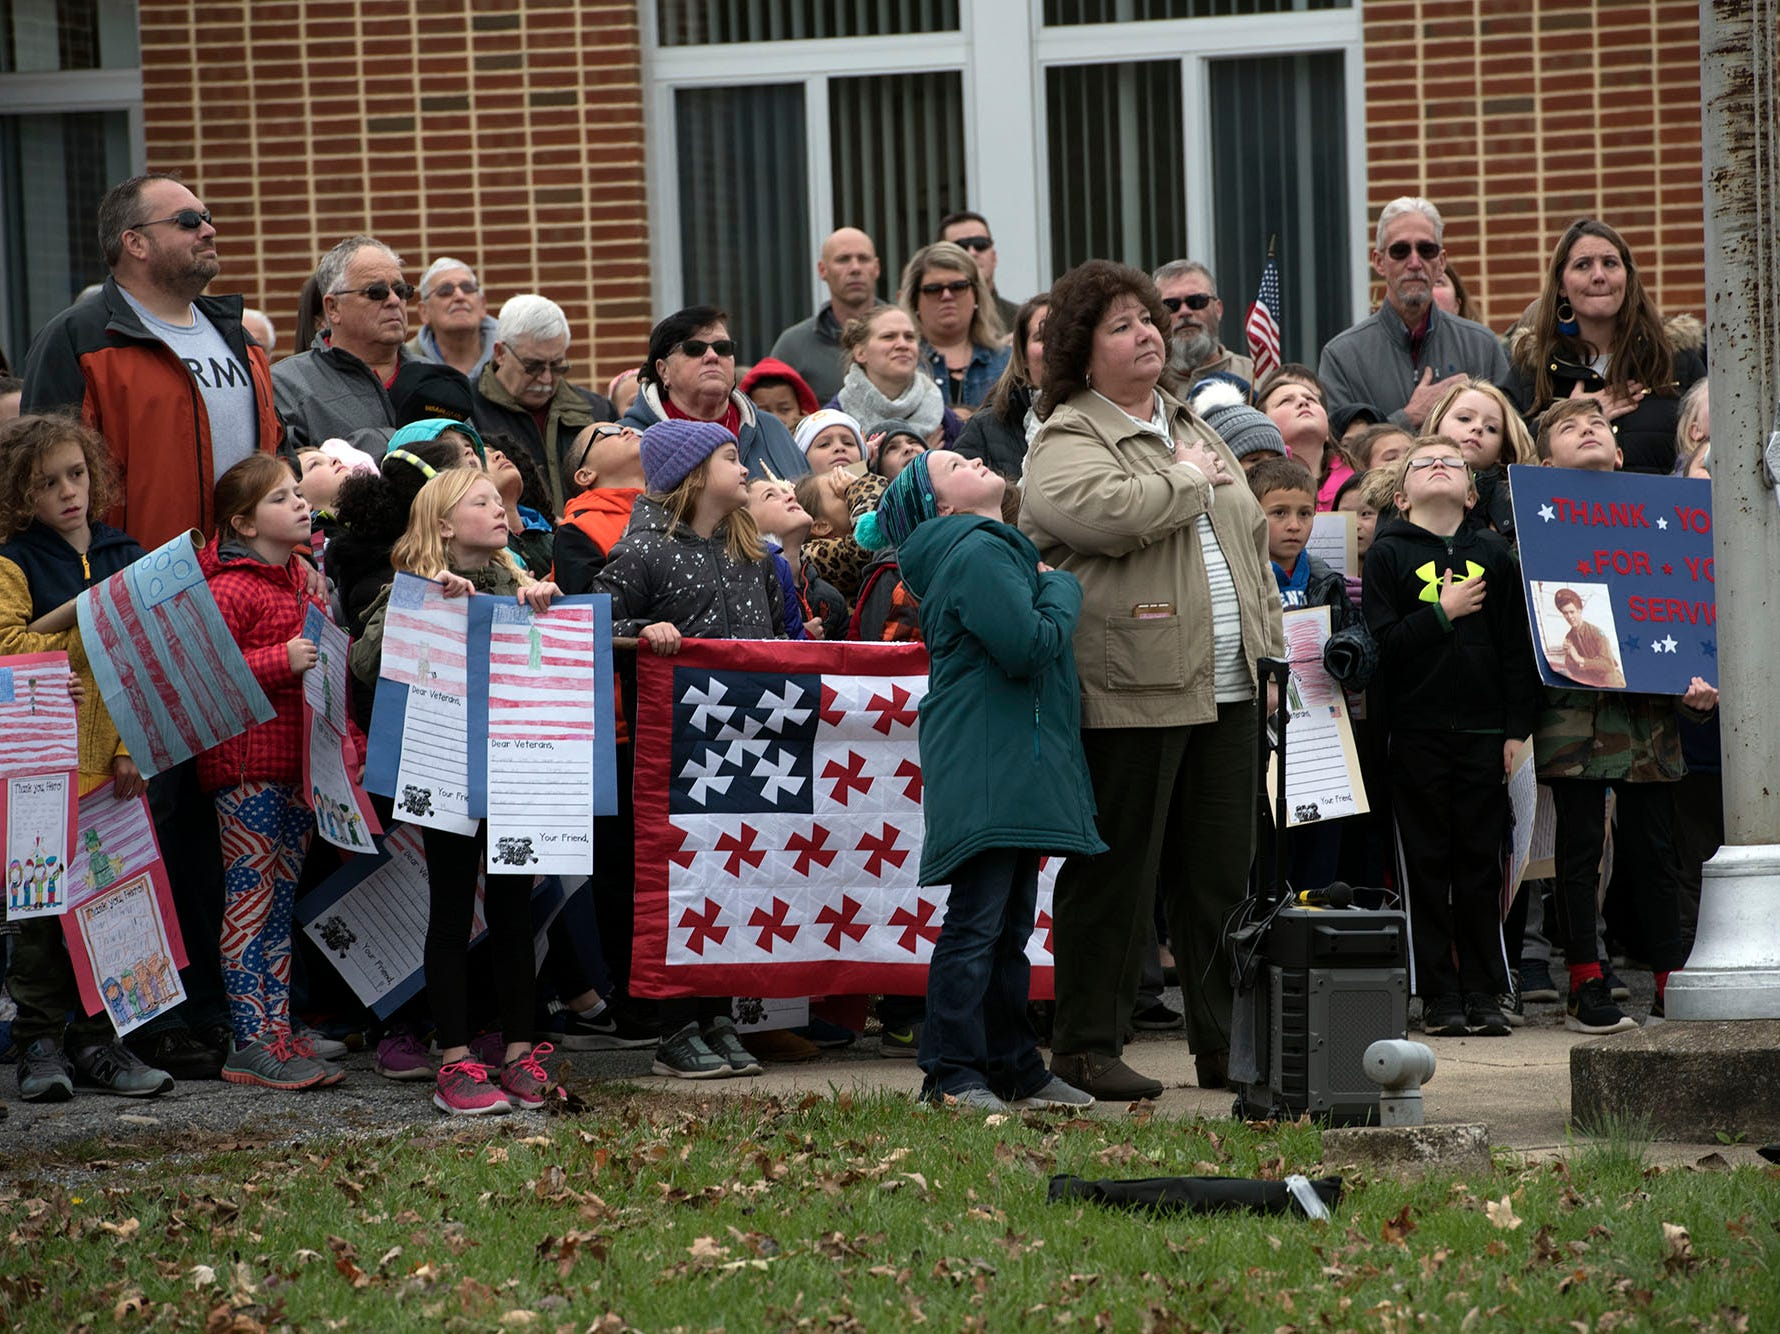 Students and teachers salute the flag during a Veterans Day Parade sponsored by James Burd Elementary School, Shippensburg. Last year, Burd hosted its own parade because the Shippensburg parade was canceled. Now the event is becoming a tradition.